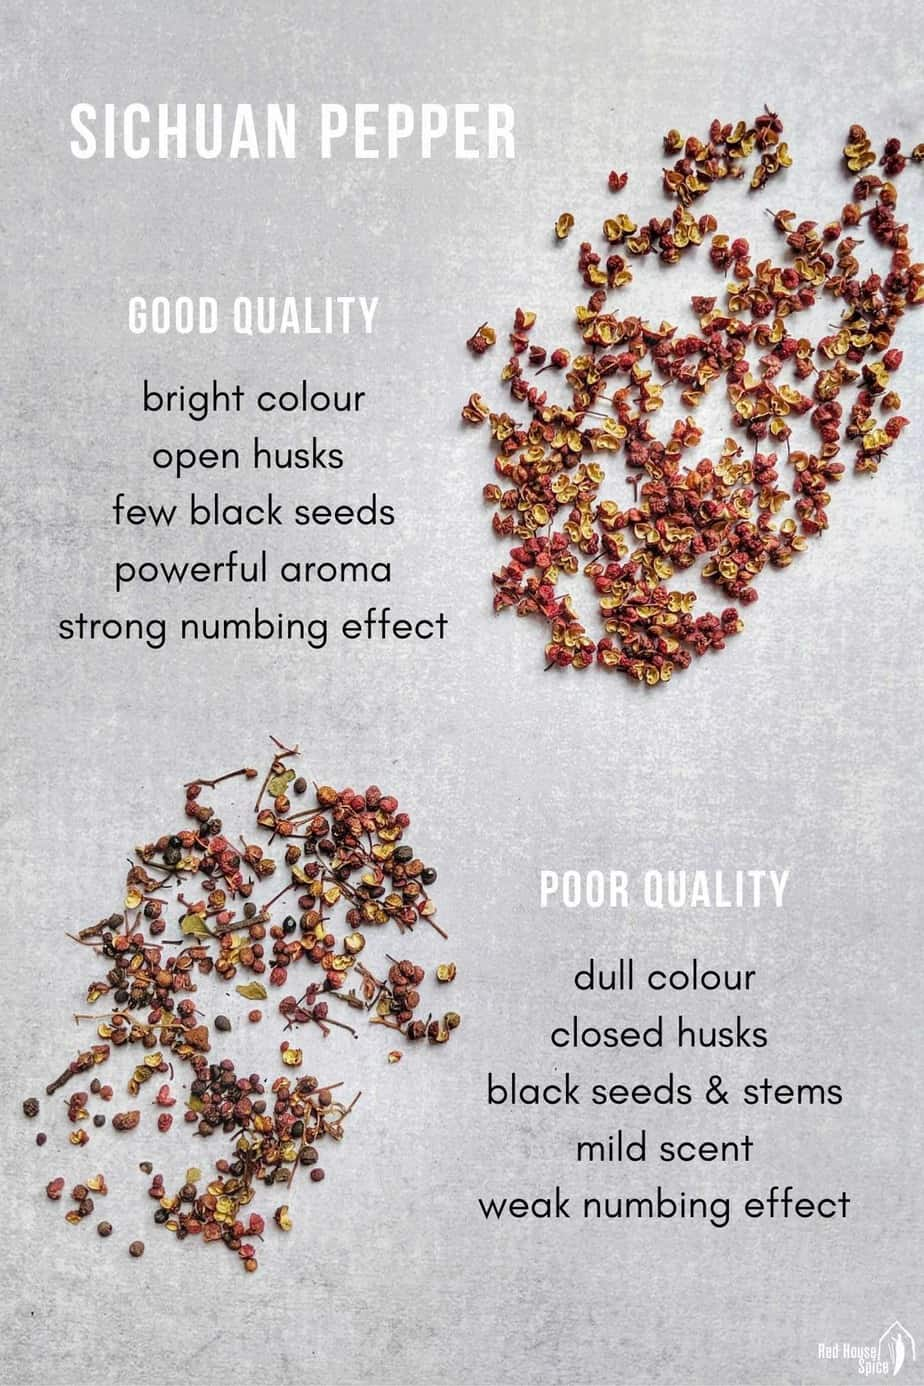 An infographic explaining how to just the quality of Sichuan pepper.